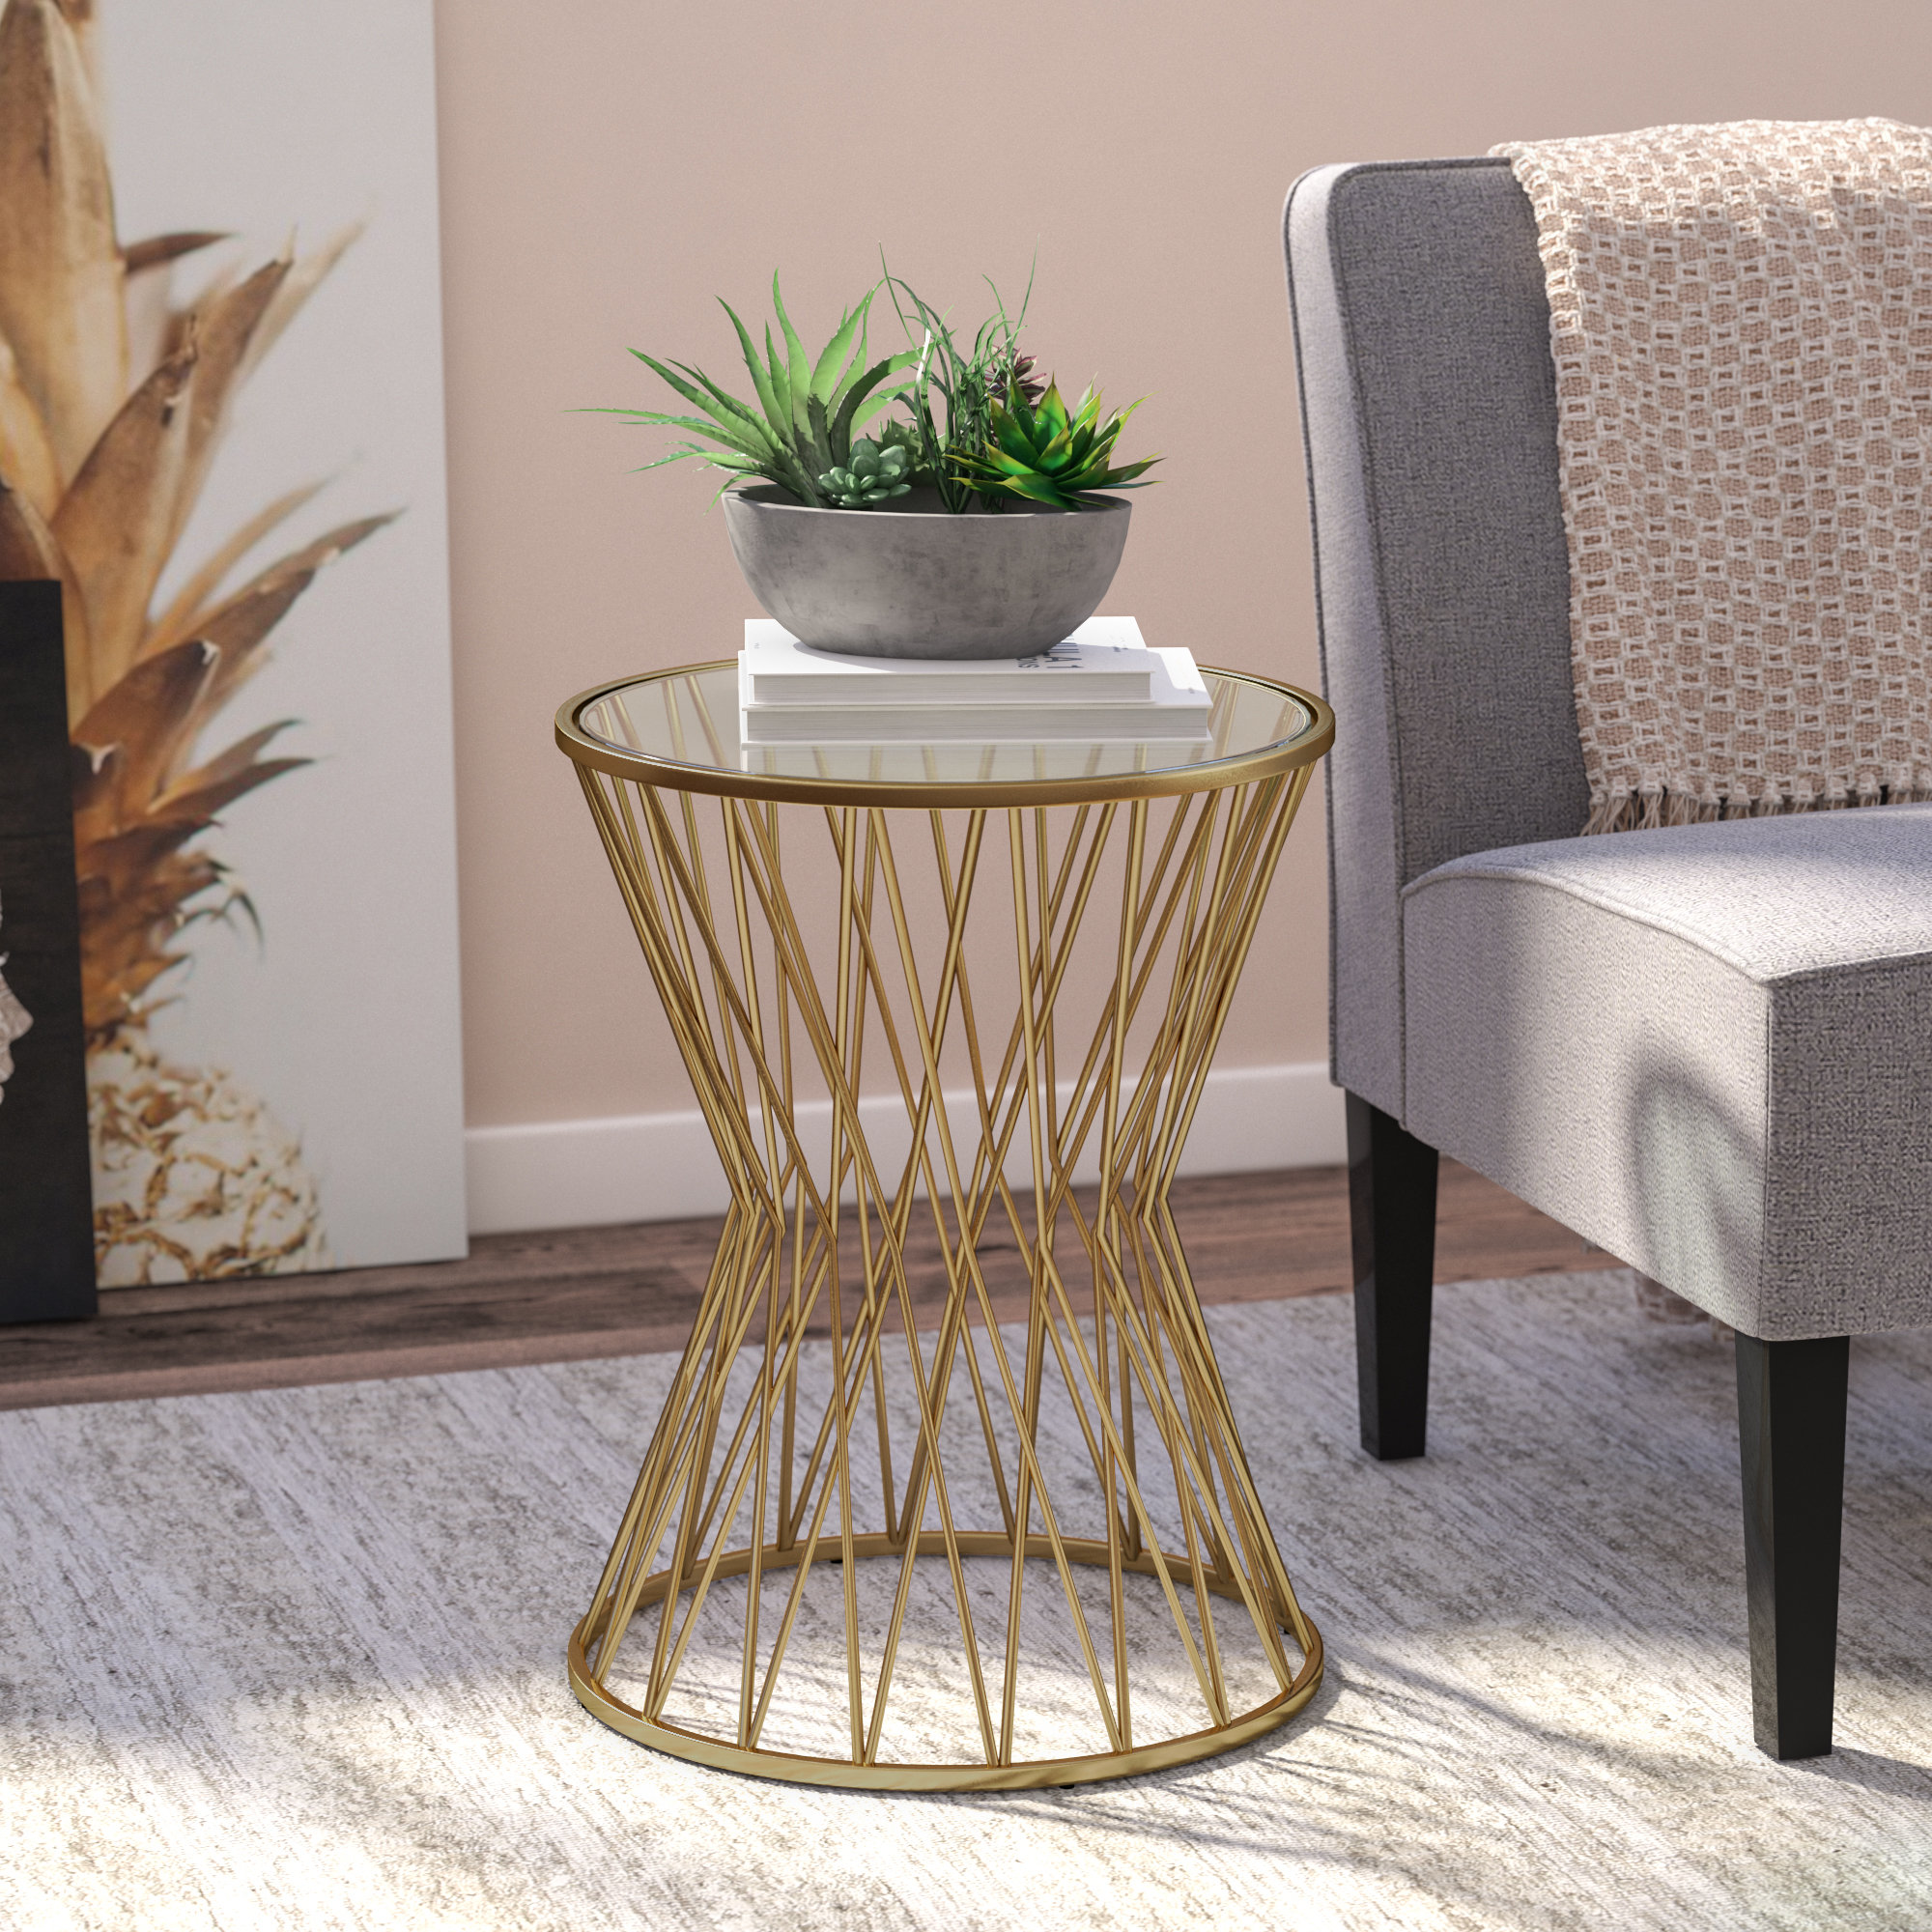 marvellous gold tray end table iron lamp lots caper big target lap couch snack adjustable wheels laptop argos floor contemporary space bey for glass computer base butler bedside